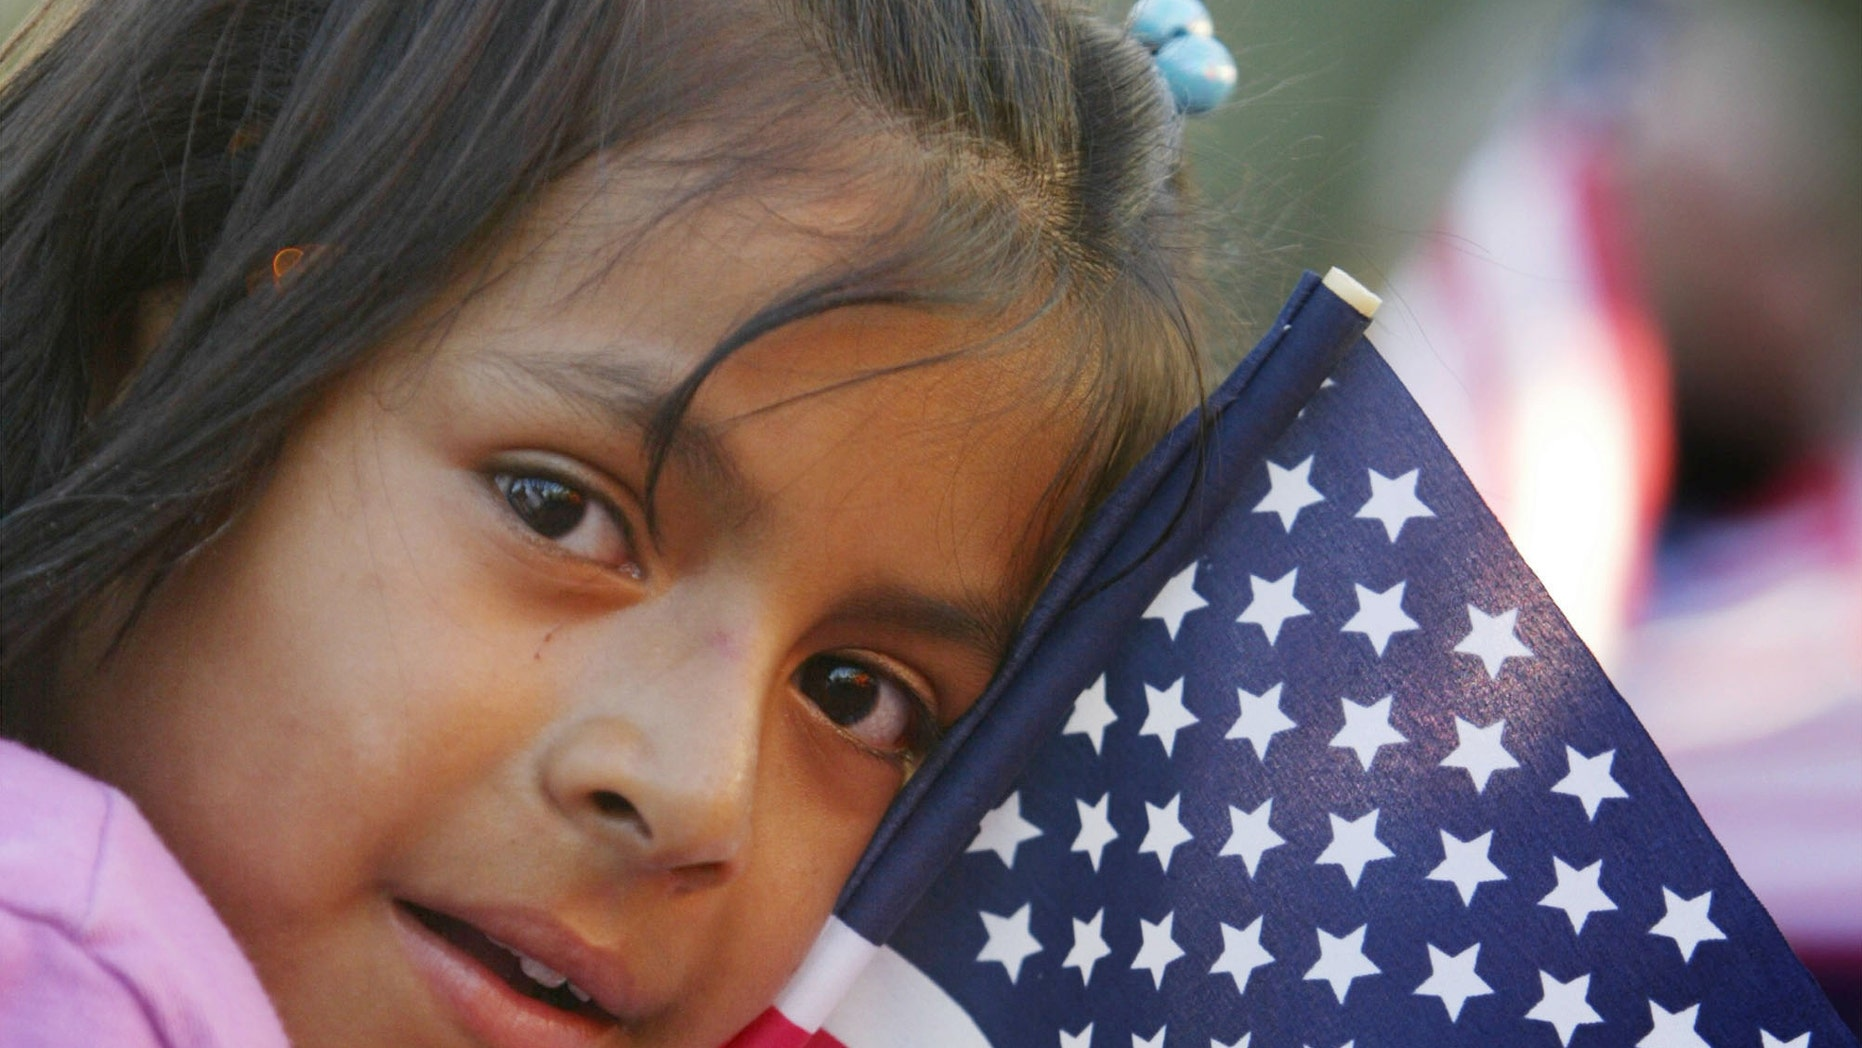 LOS ANGELES - SEPTEMBER 5:  A Latina girl clutches an American flag while waiting to see California Governor Gray Davis sign the controversial SB 60 into law,, allowing undocumented immigrants to get a California driver's license September 5, 2003 in Los Angeles, California. Critics claim that Davis reversed his position on the bill to gain Latino votes in the October 7 recall election.  (Photo by David McNew/Getty Images)